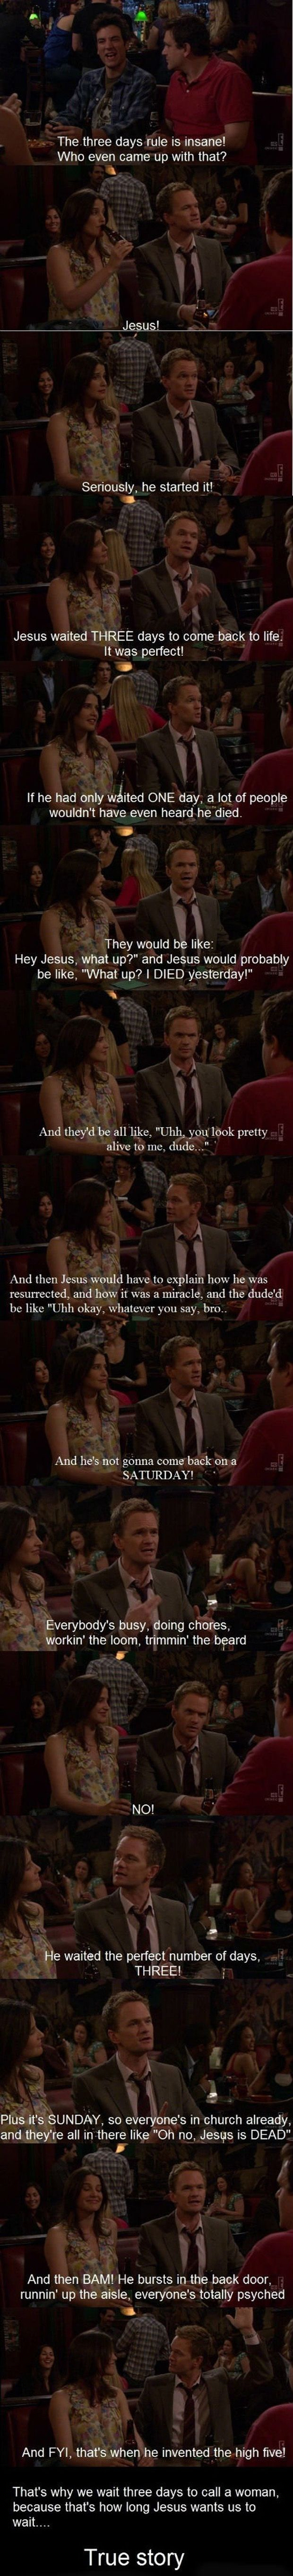 hahaha- How I Met Your MotherBarneys Stinson, High Five, Three Day, With, Quote, Too Funny, So Funny, The Rules, True Stories